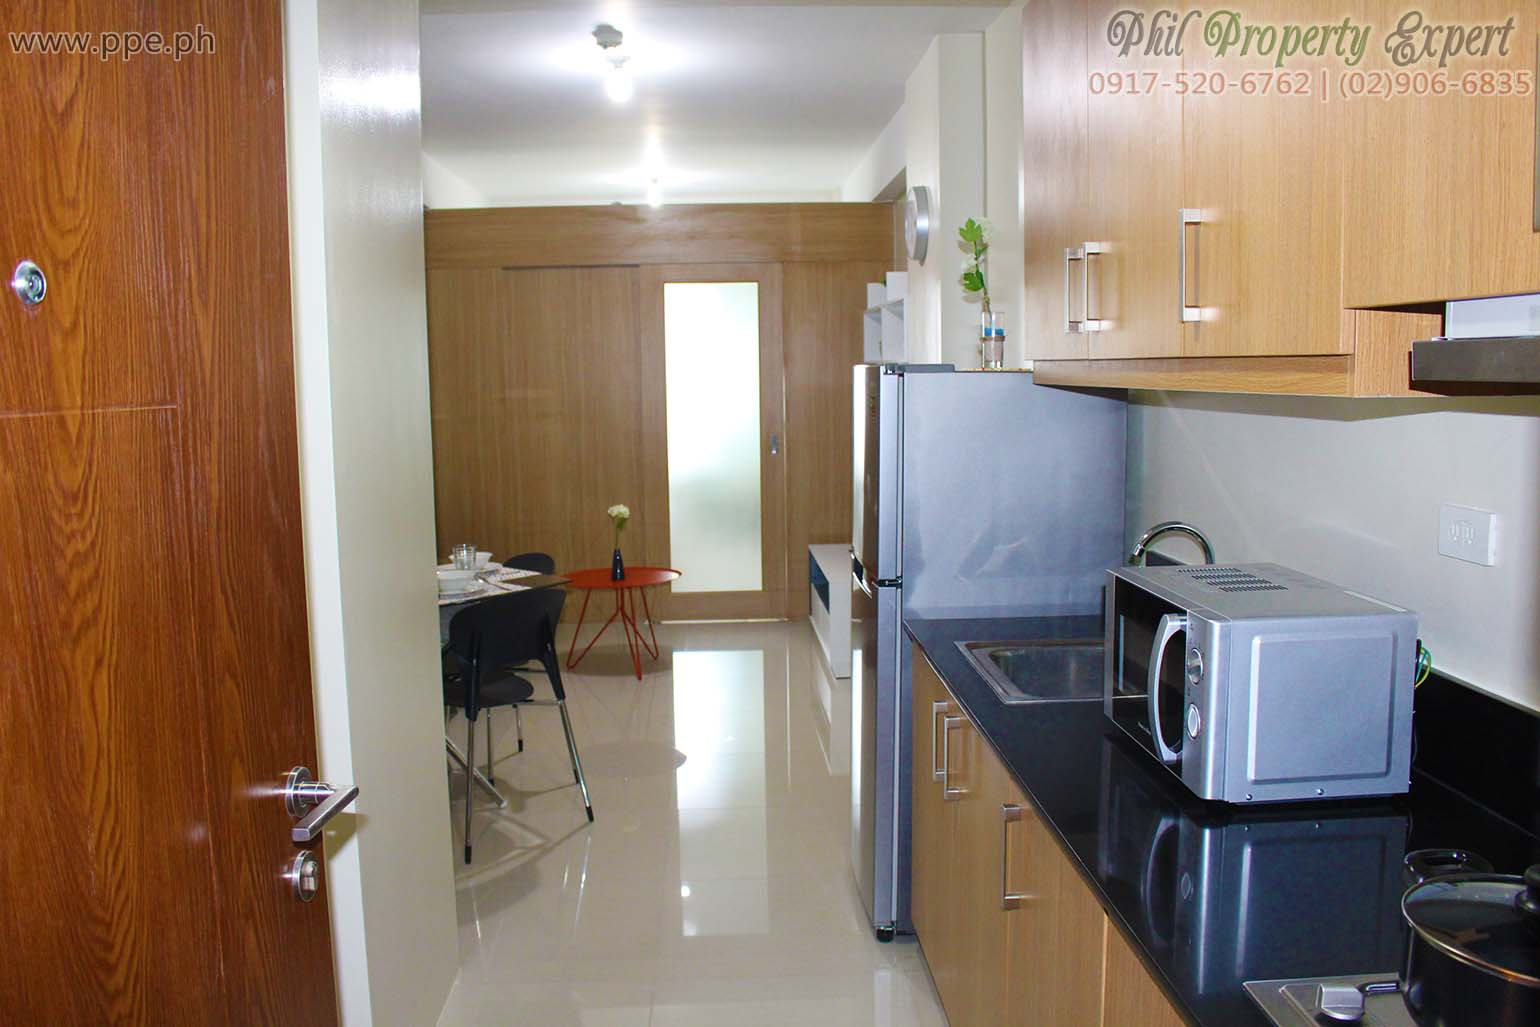 1 bedroom condo for rent in pasay mall of asia complex for 1 bedroom condo for rent